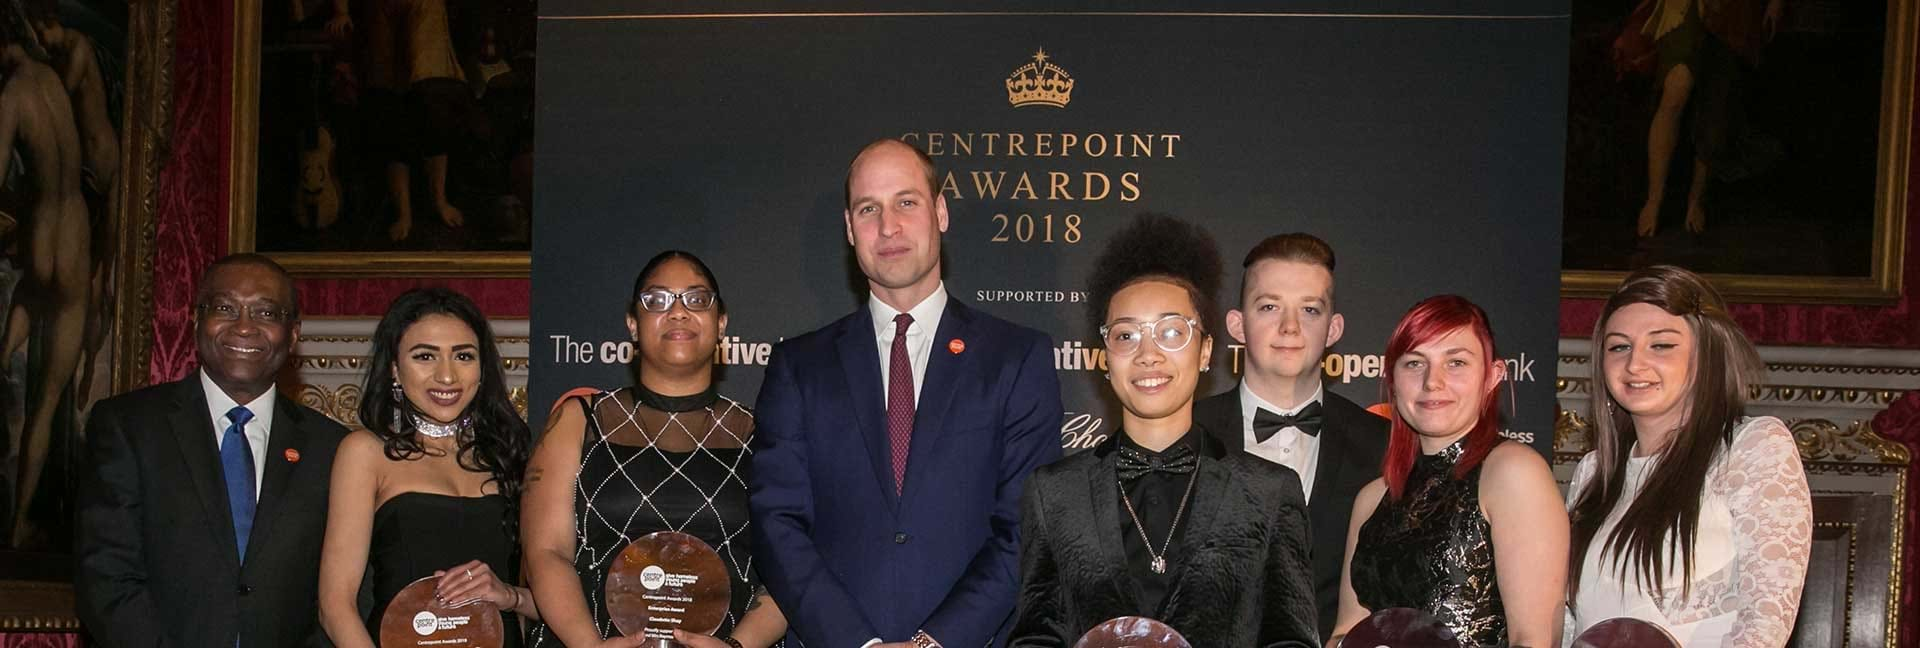 The Duke of Cambridge with the Centrepoint Awards winners and Seyi Obakin.